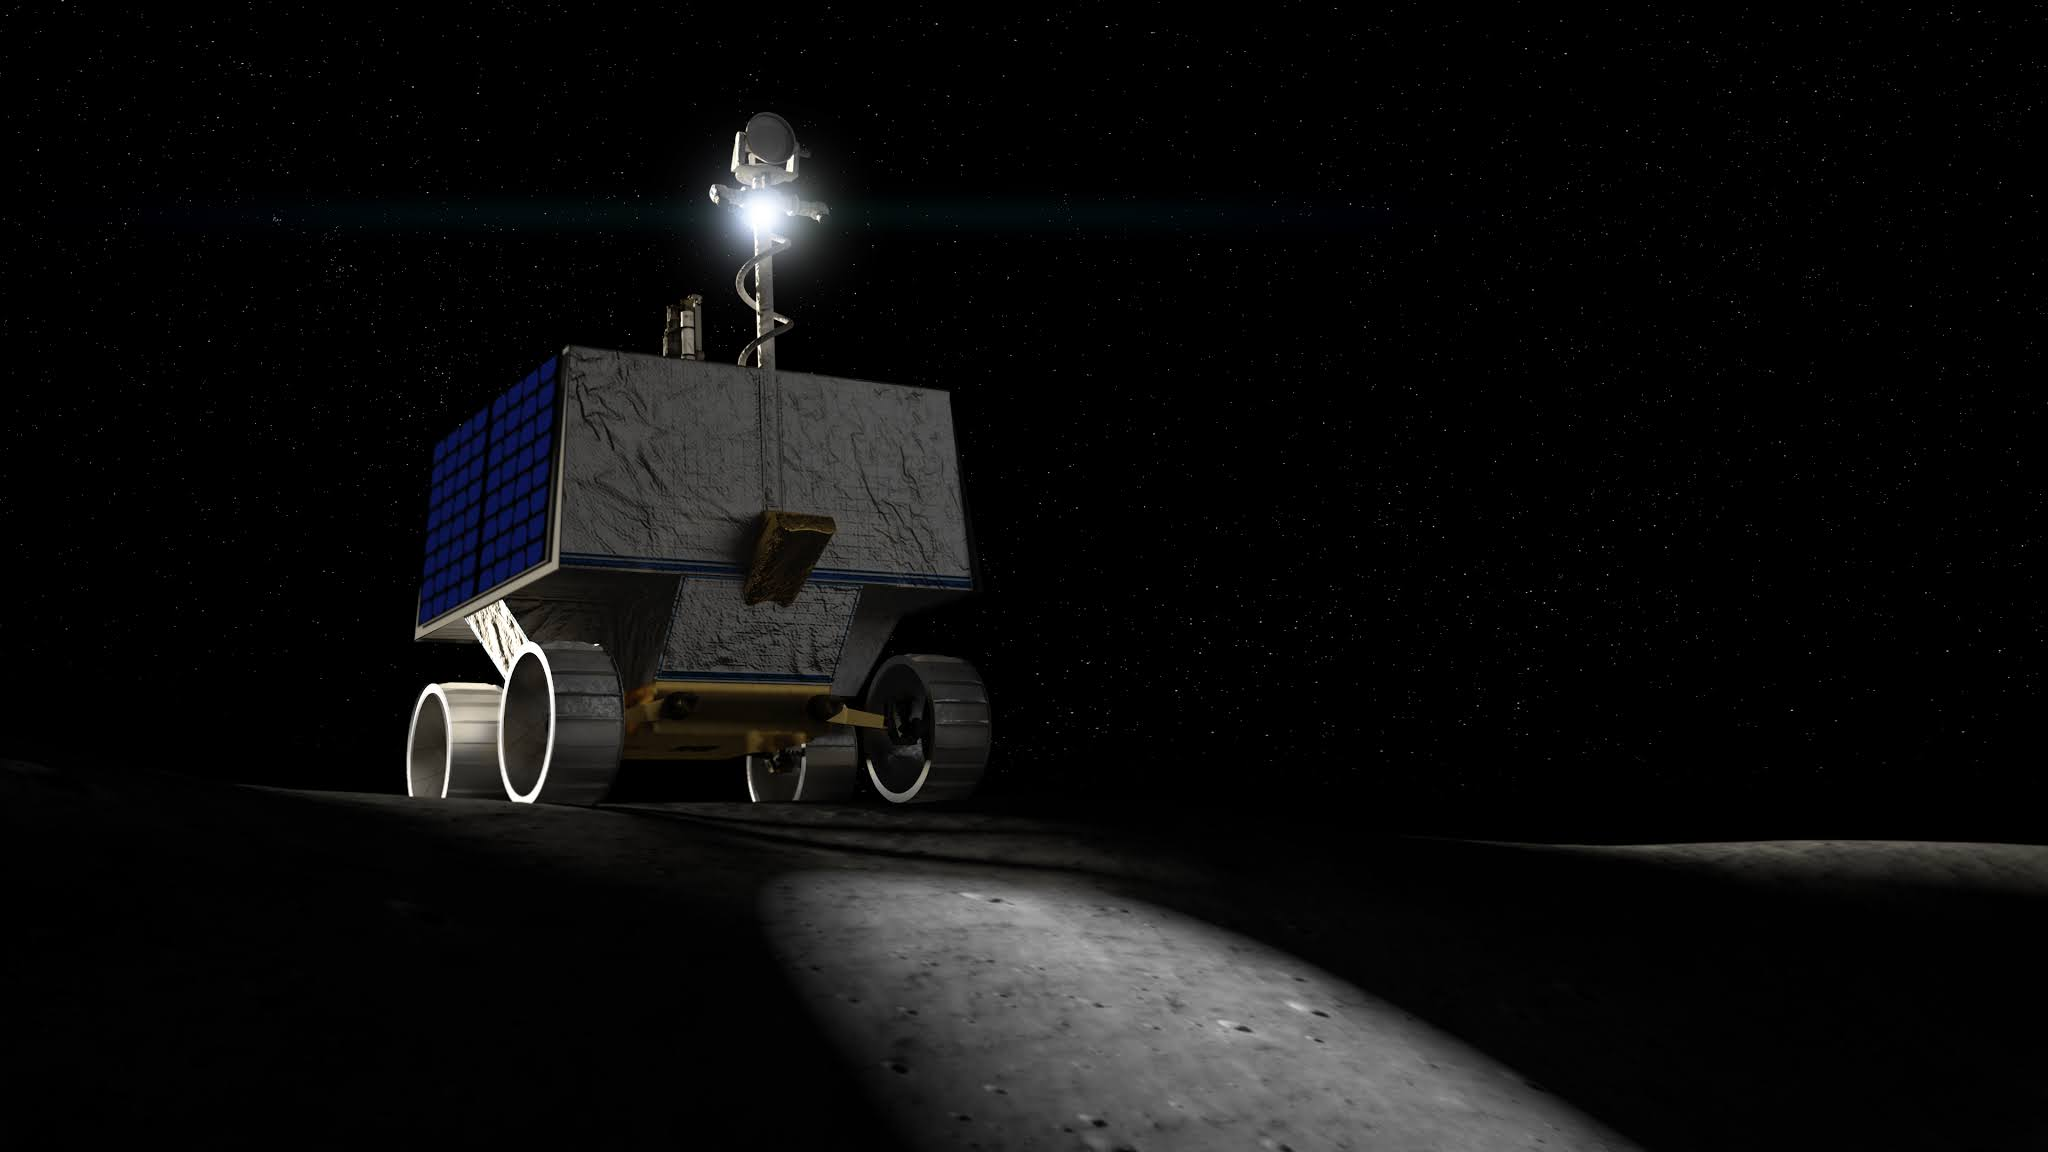 NASA Rover 'VIPER' to Search for Ice, Evaluate Environment on Moon in 2023